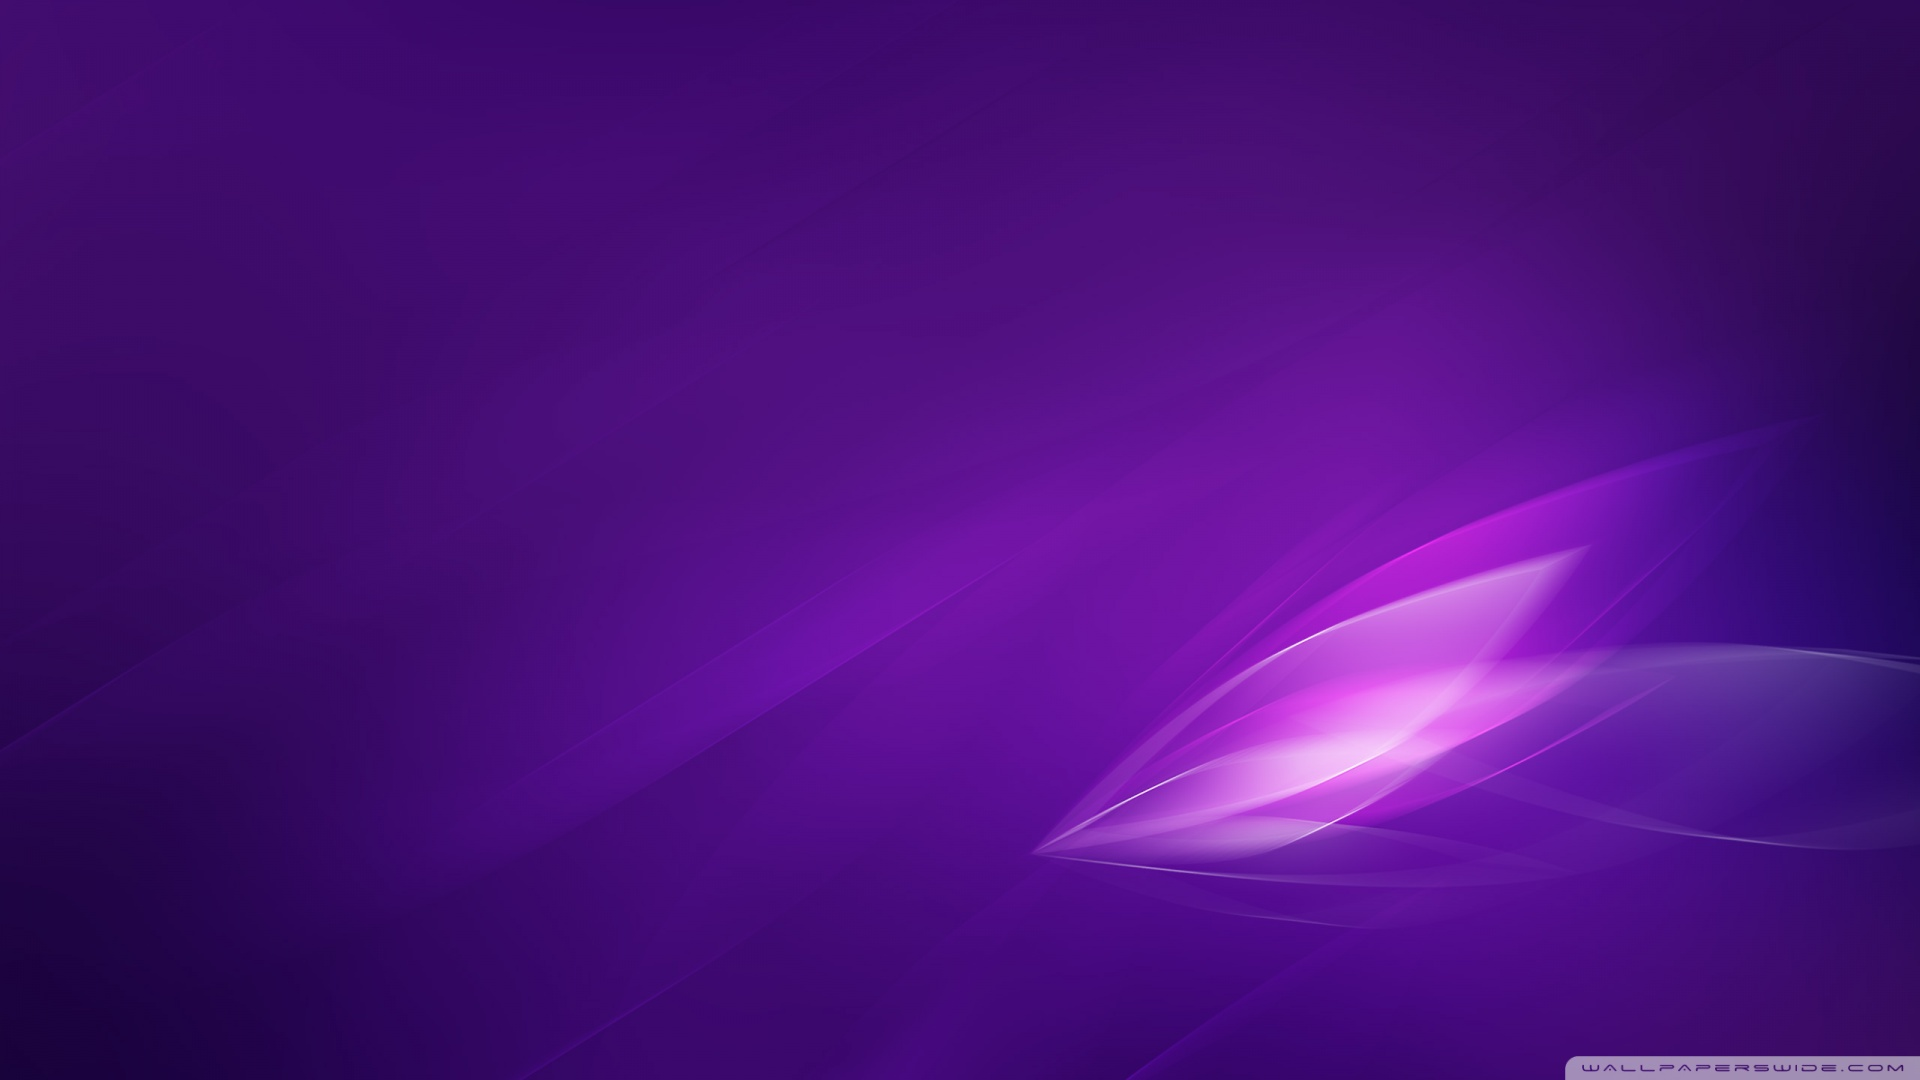 Purple Wallpaper   Colors Wallpaper 34511589 1920x1080